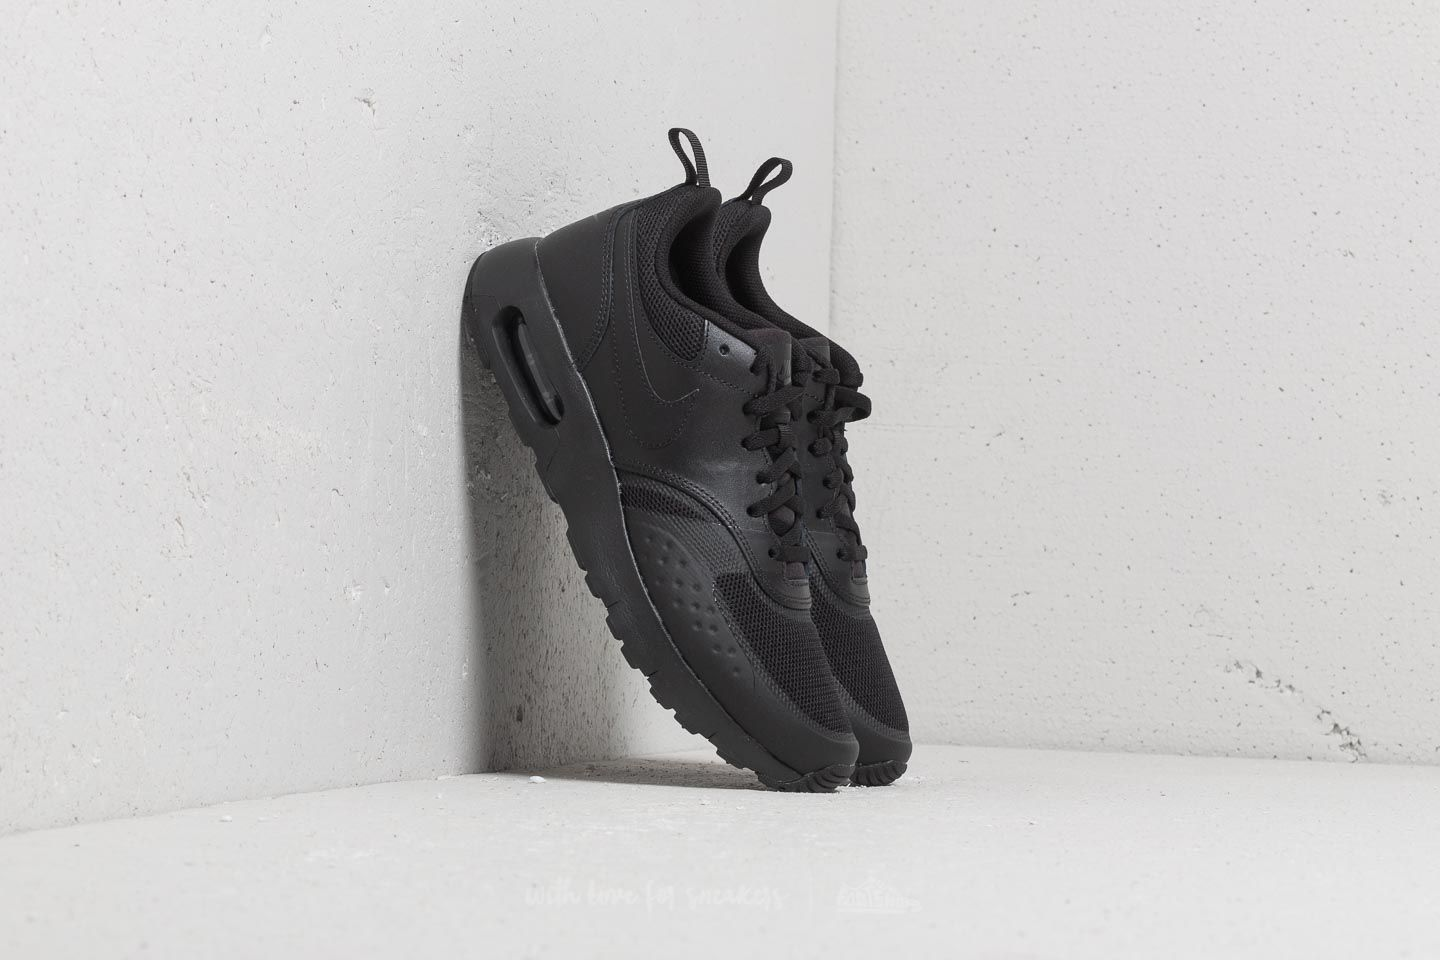 low priced d93f8 6fca4 Nike Air Max Vision (GS) Black  Black at a great price 88 €